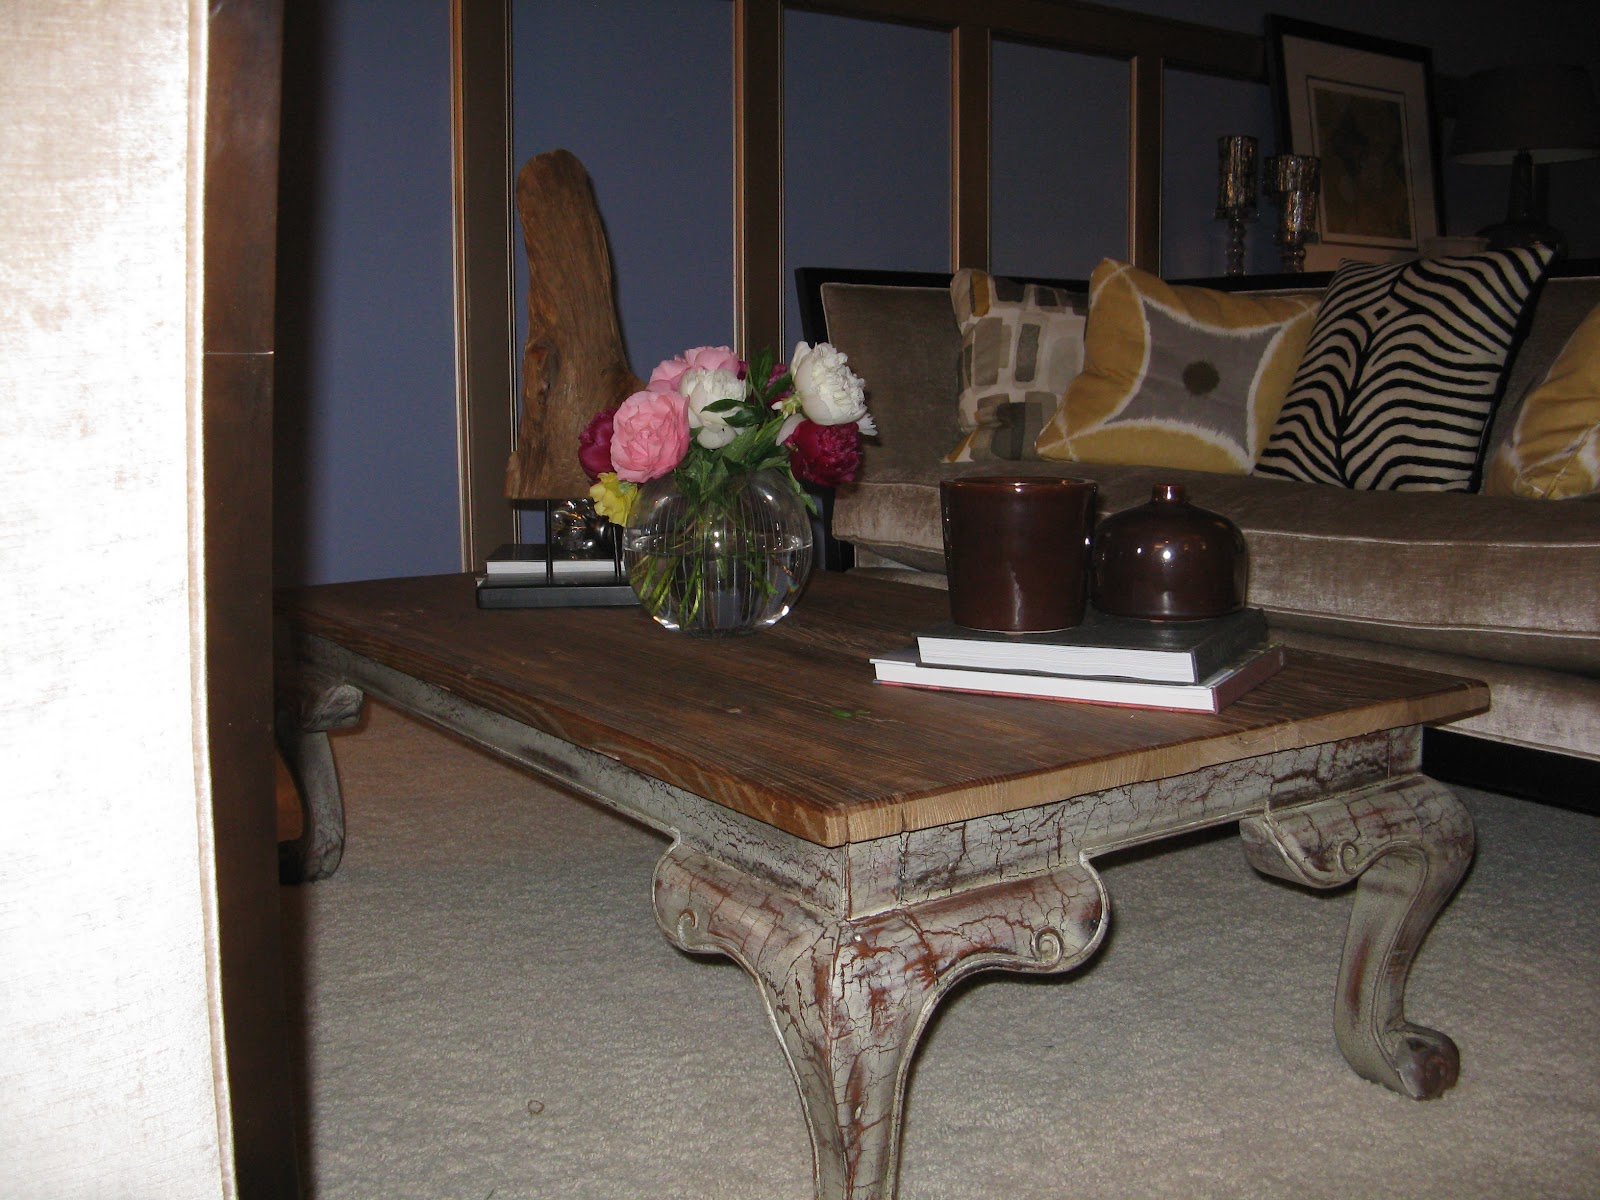 Maddiejhomedecor Redecorating Dining And Living Room